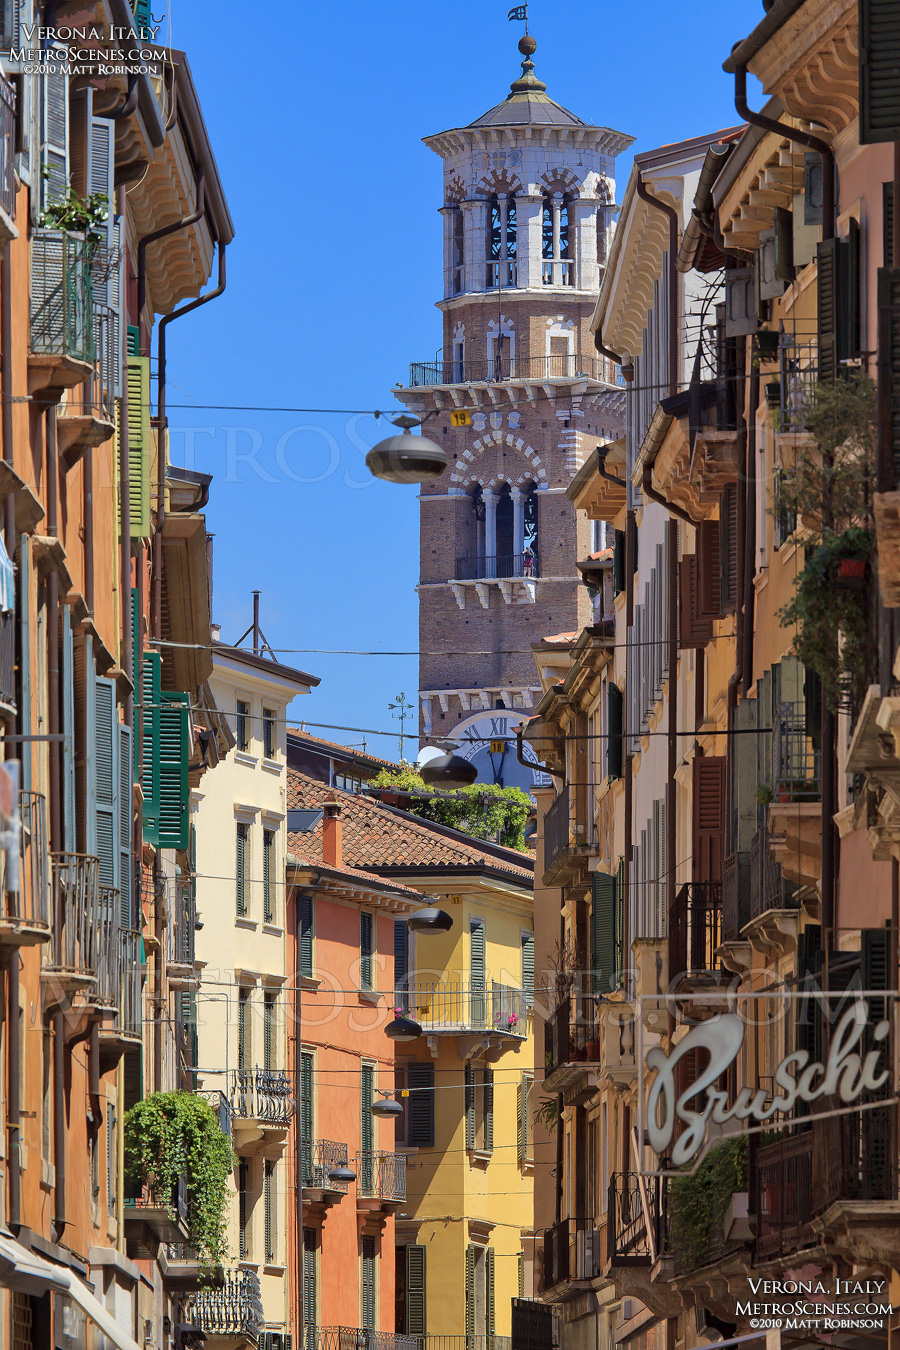 Colorful facades in Verona